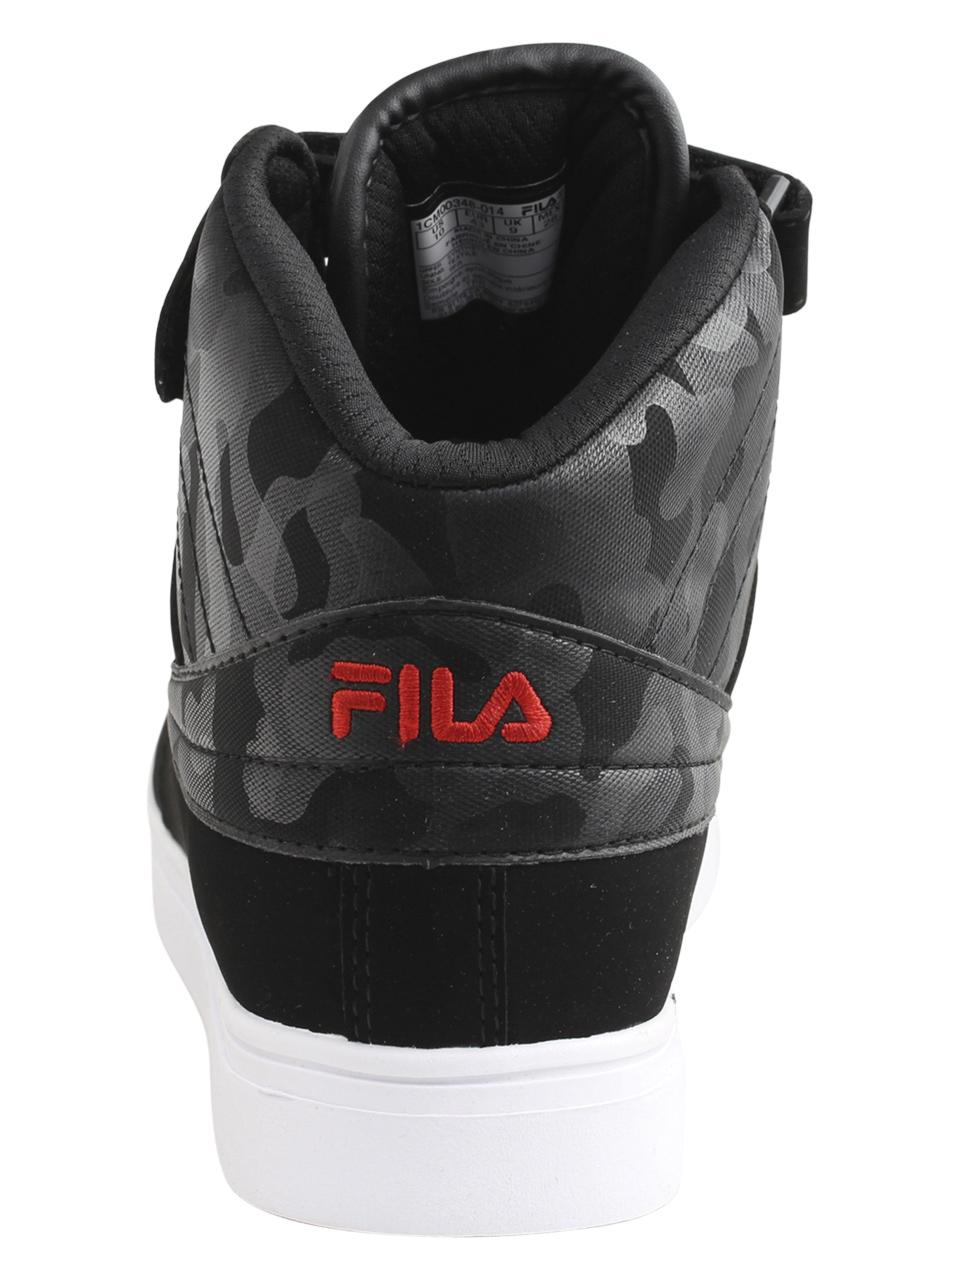 bf275b9e12dea Fila Men's Vulc-13-MP-Camo Sneakers Shoes